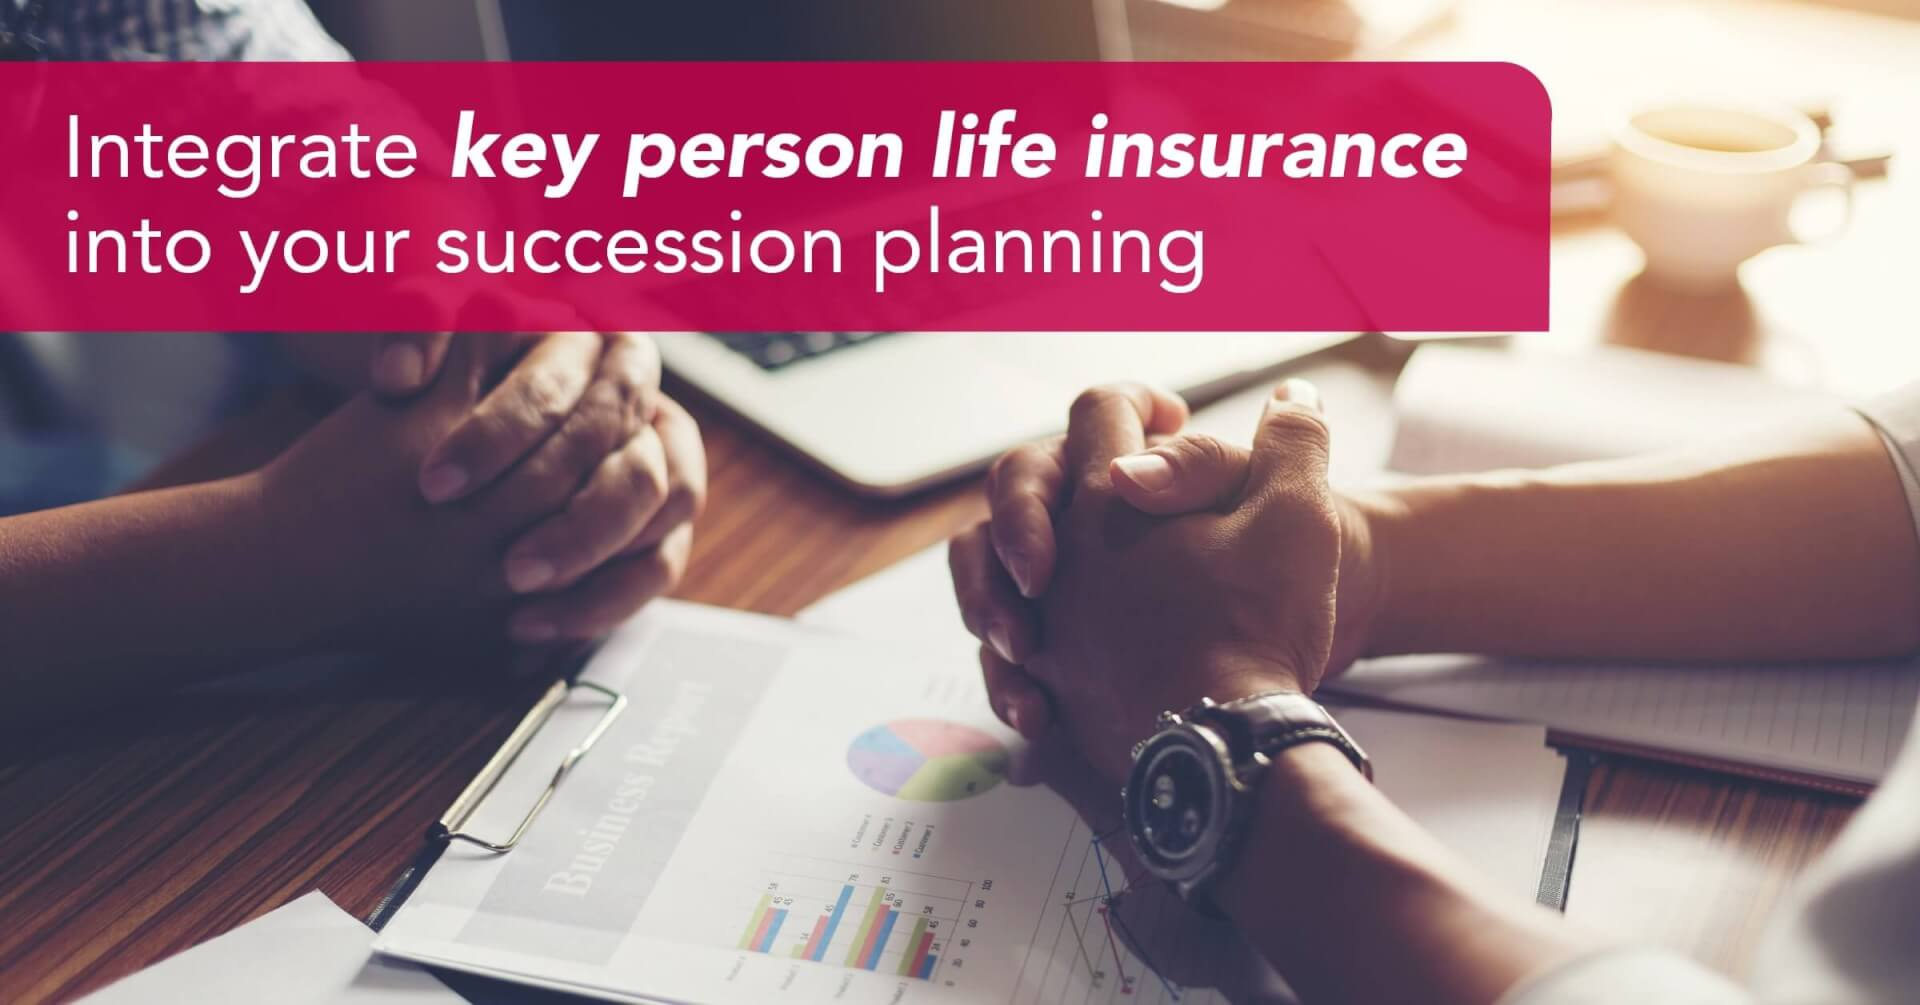 Social Business - Integrate Key Person Life Insurance Into Your Succession Planning